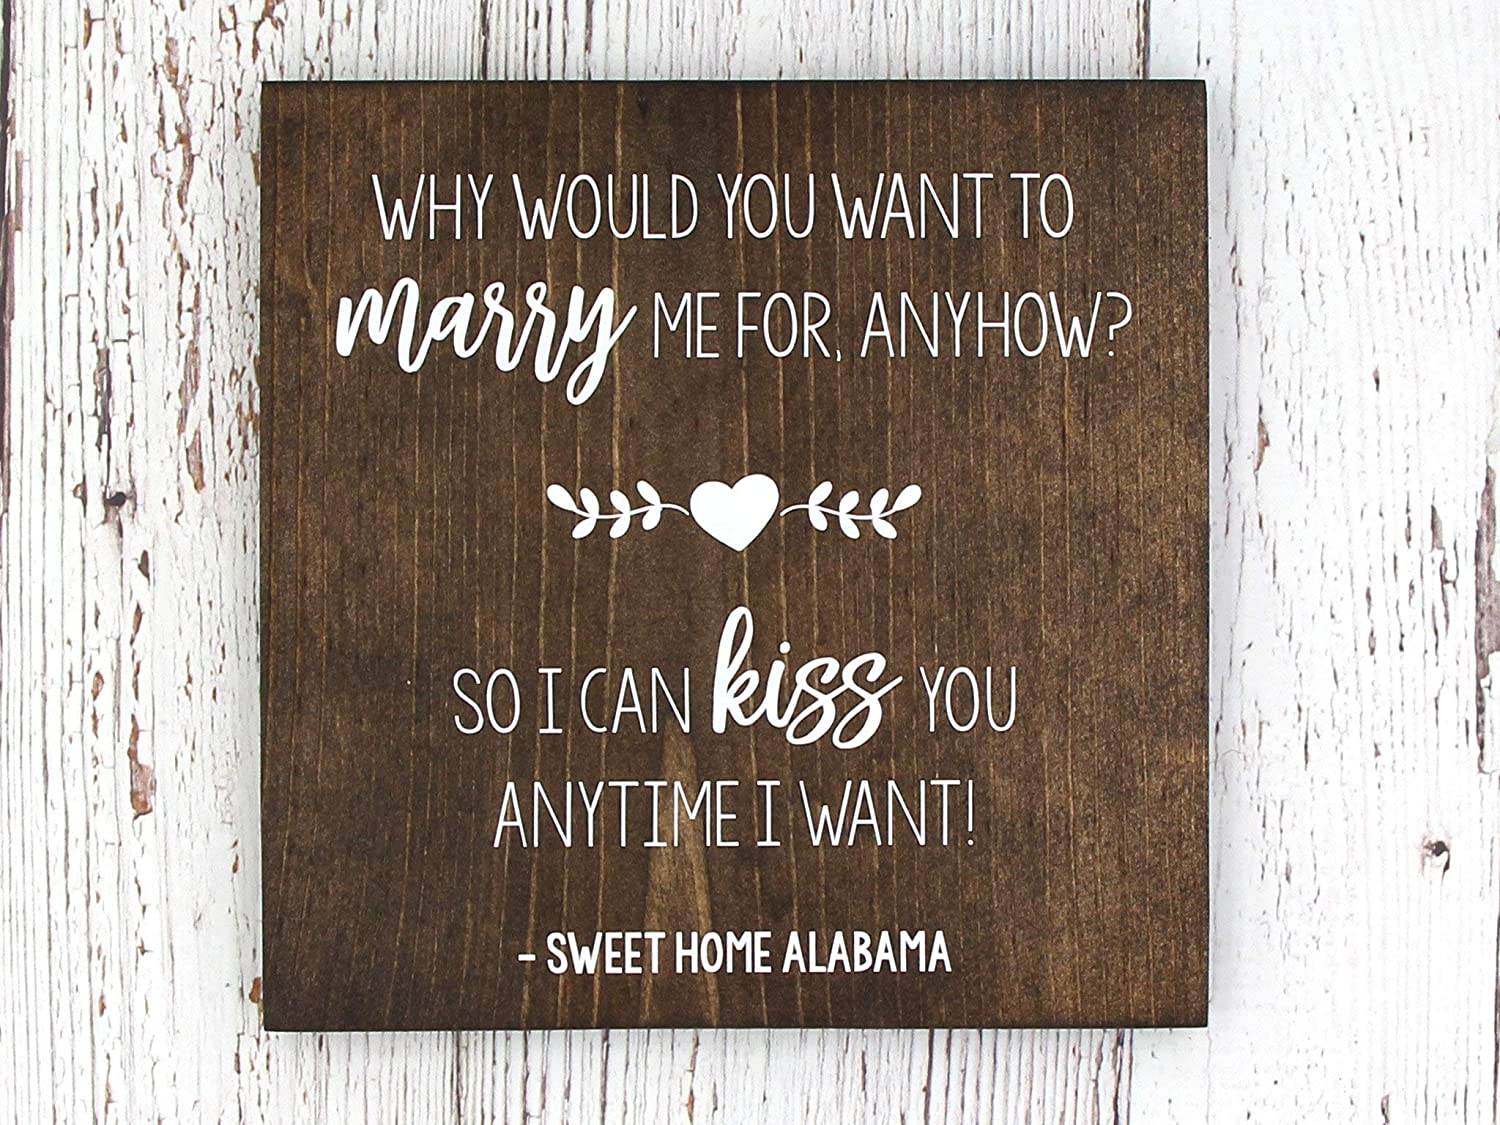 """CELYCASY So I can kiss You Anytime I Want - Sweet Home Alabama - Wood Sign - Wedding Gift - 9.25""""x9.25"""" - Gray or Walnut"""